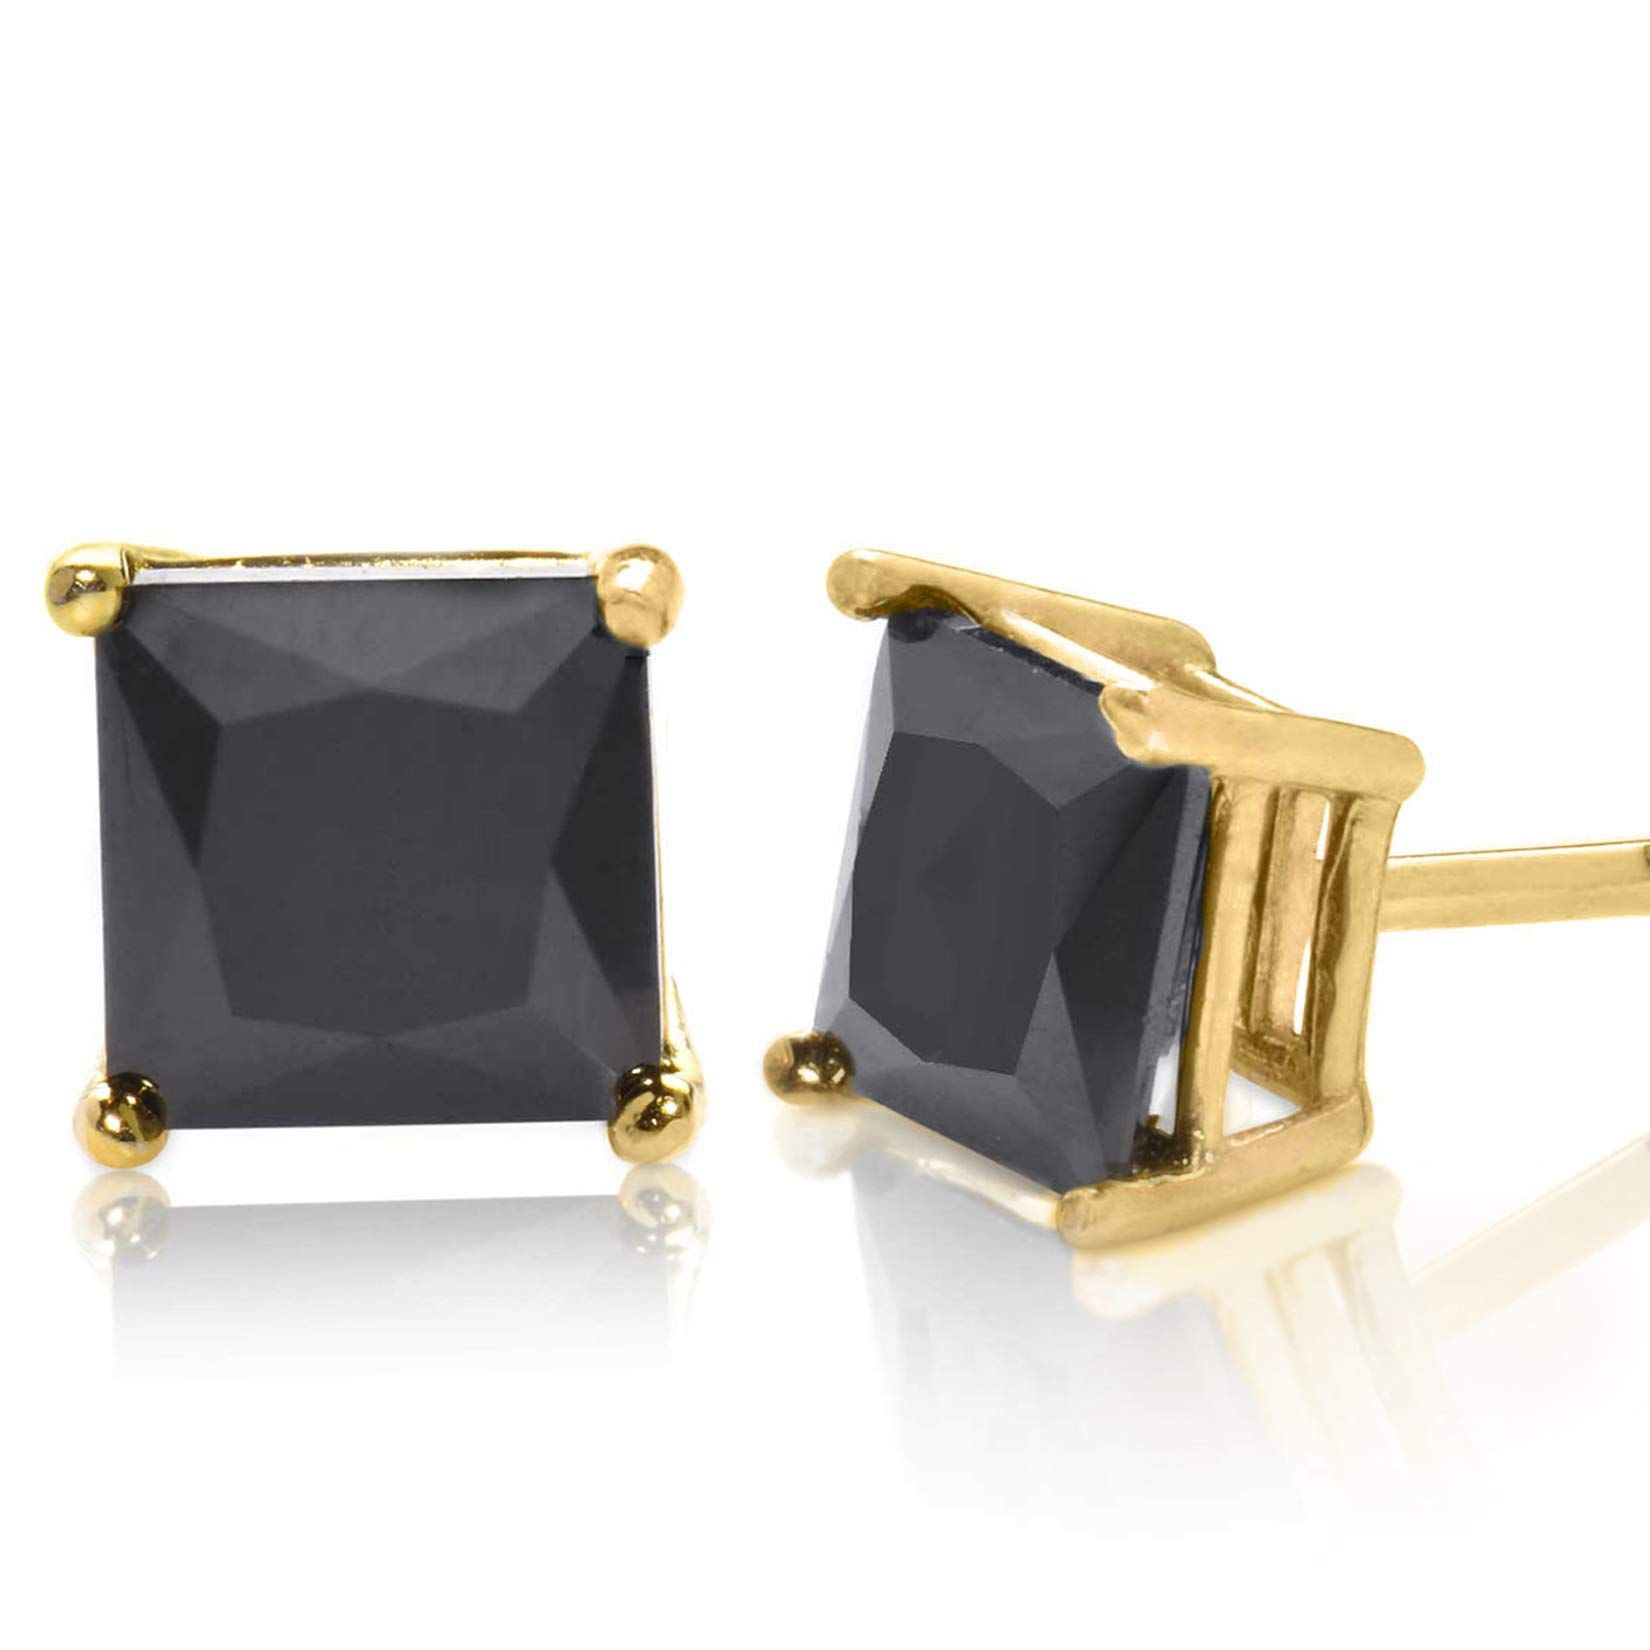 Radiant Princess Square Cut Black CZ Unisex Stud Earrings Gold Plated 925 Sterling Silver 8x8mm